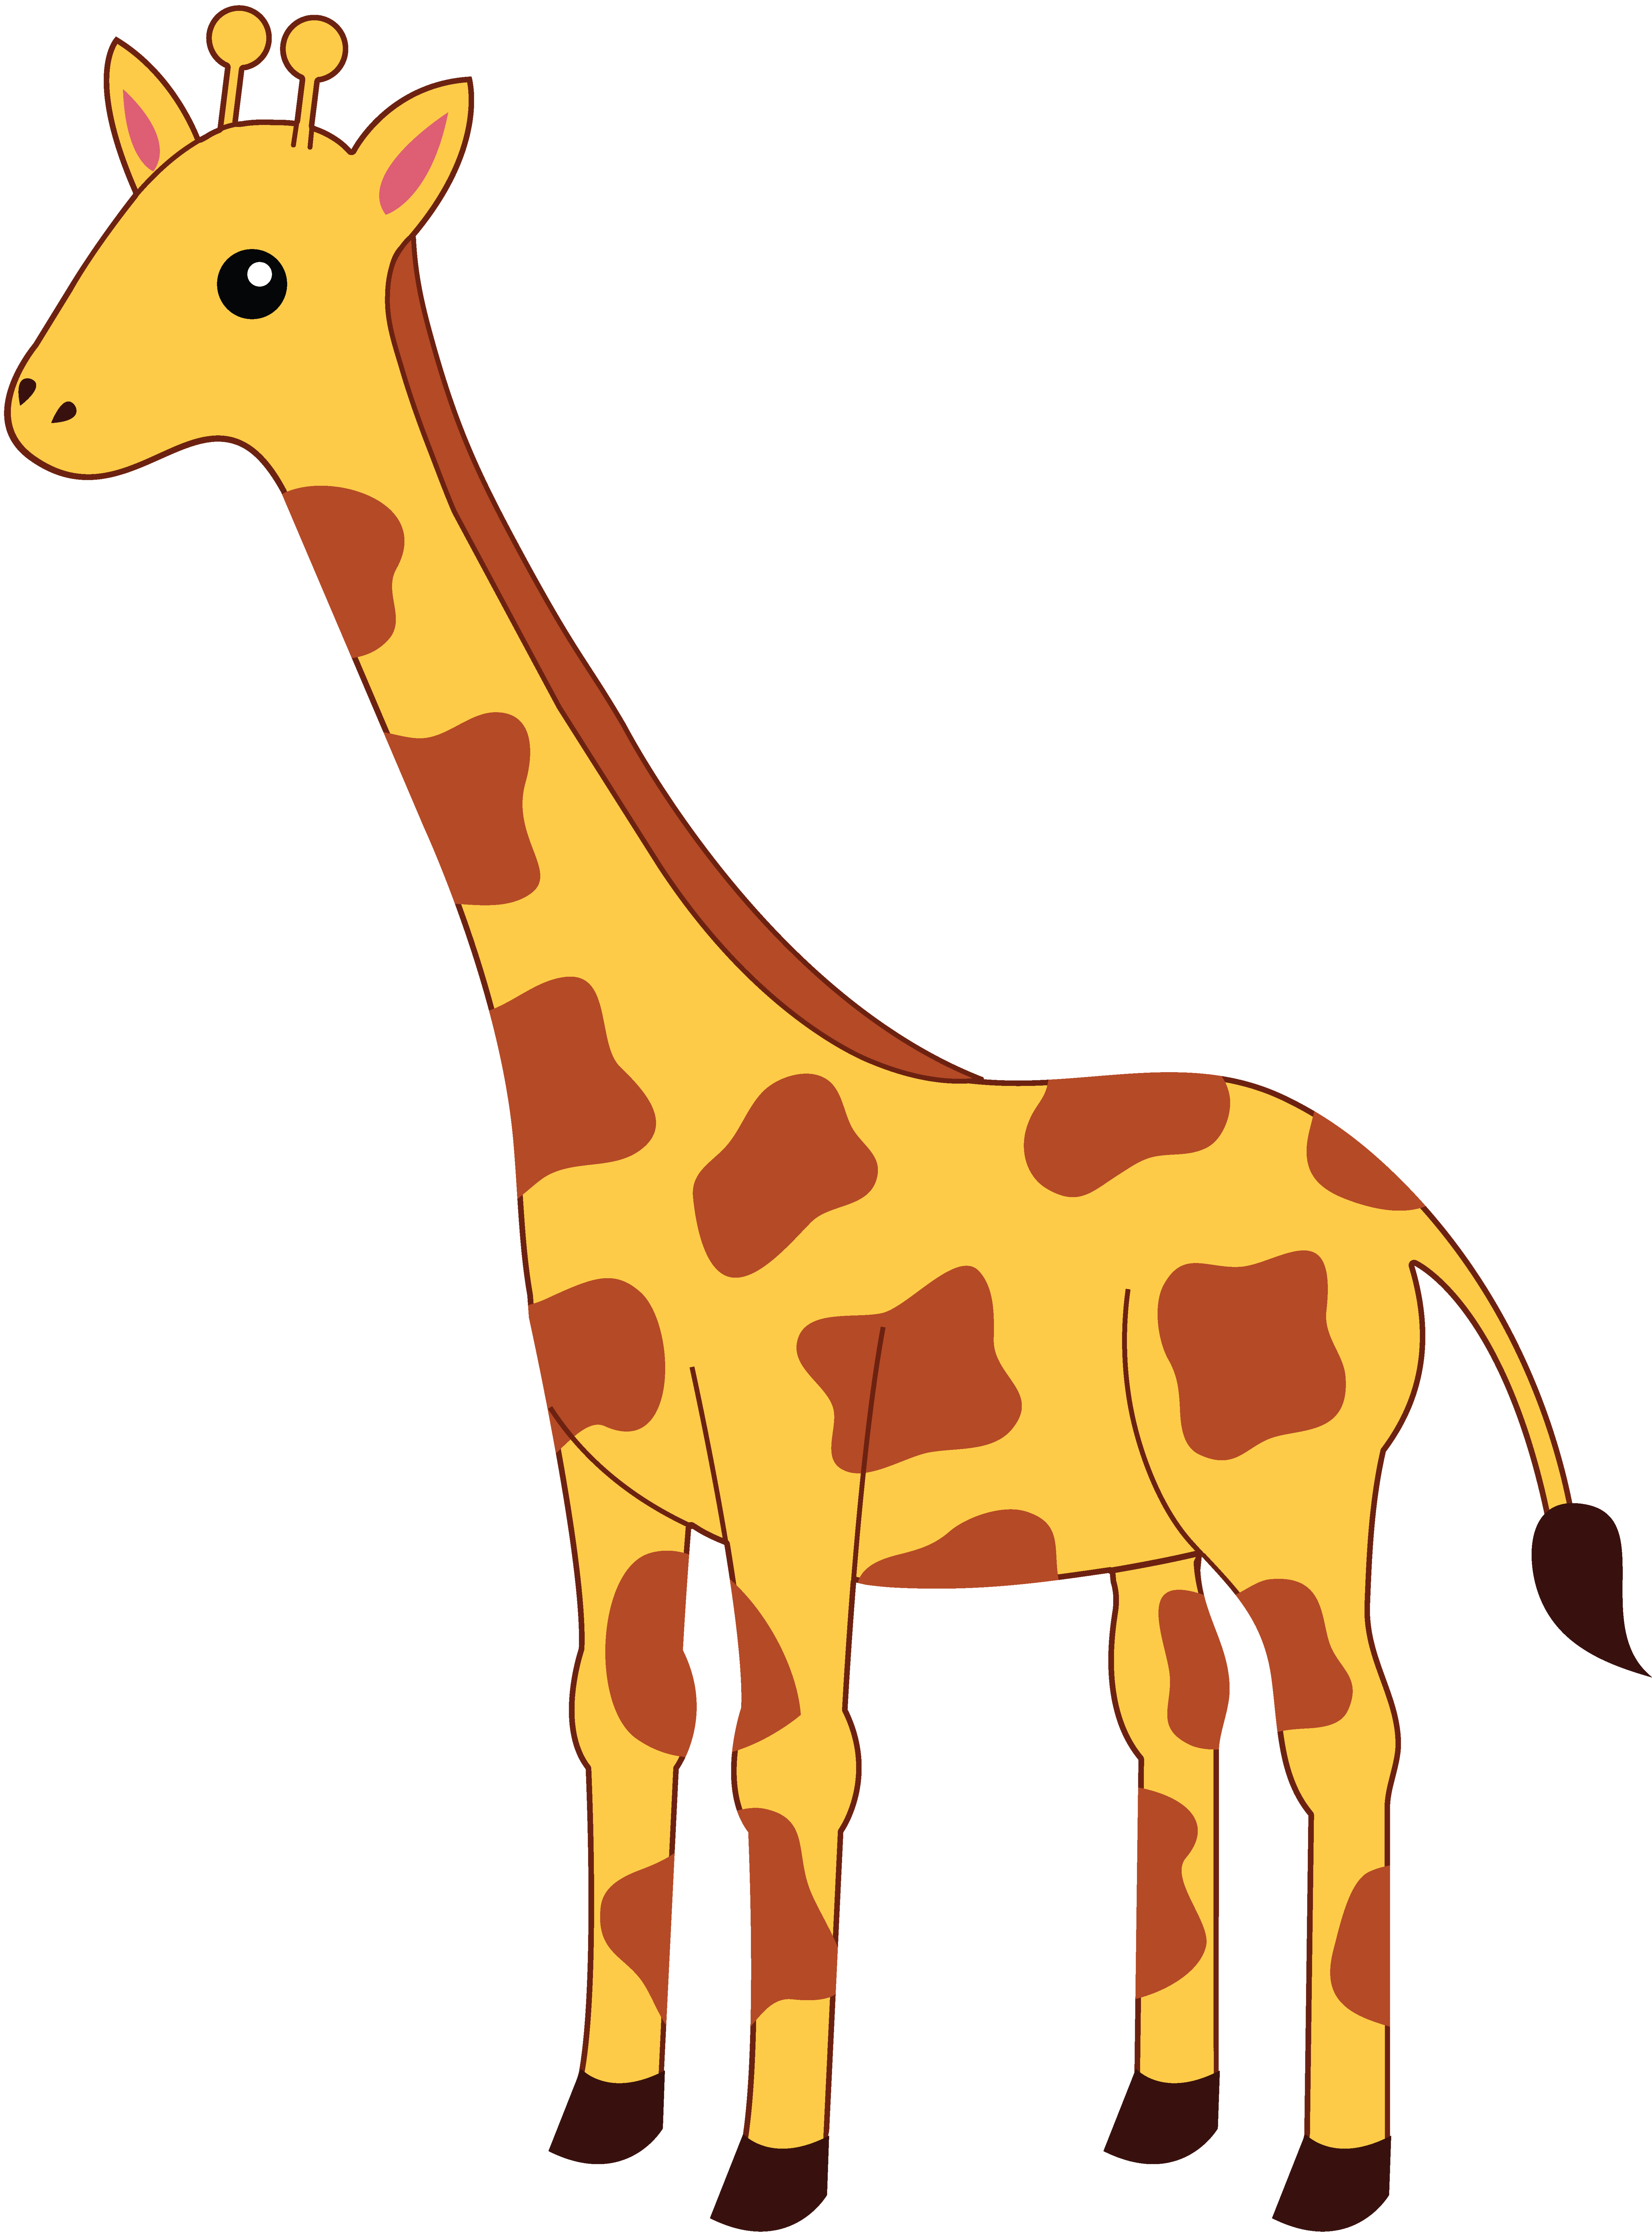 316fb08e0e213877e9395dd4928135 ... 316fb08e0e213877e9395dd4928135 ... Cartoon Giraffe clip art